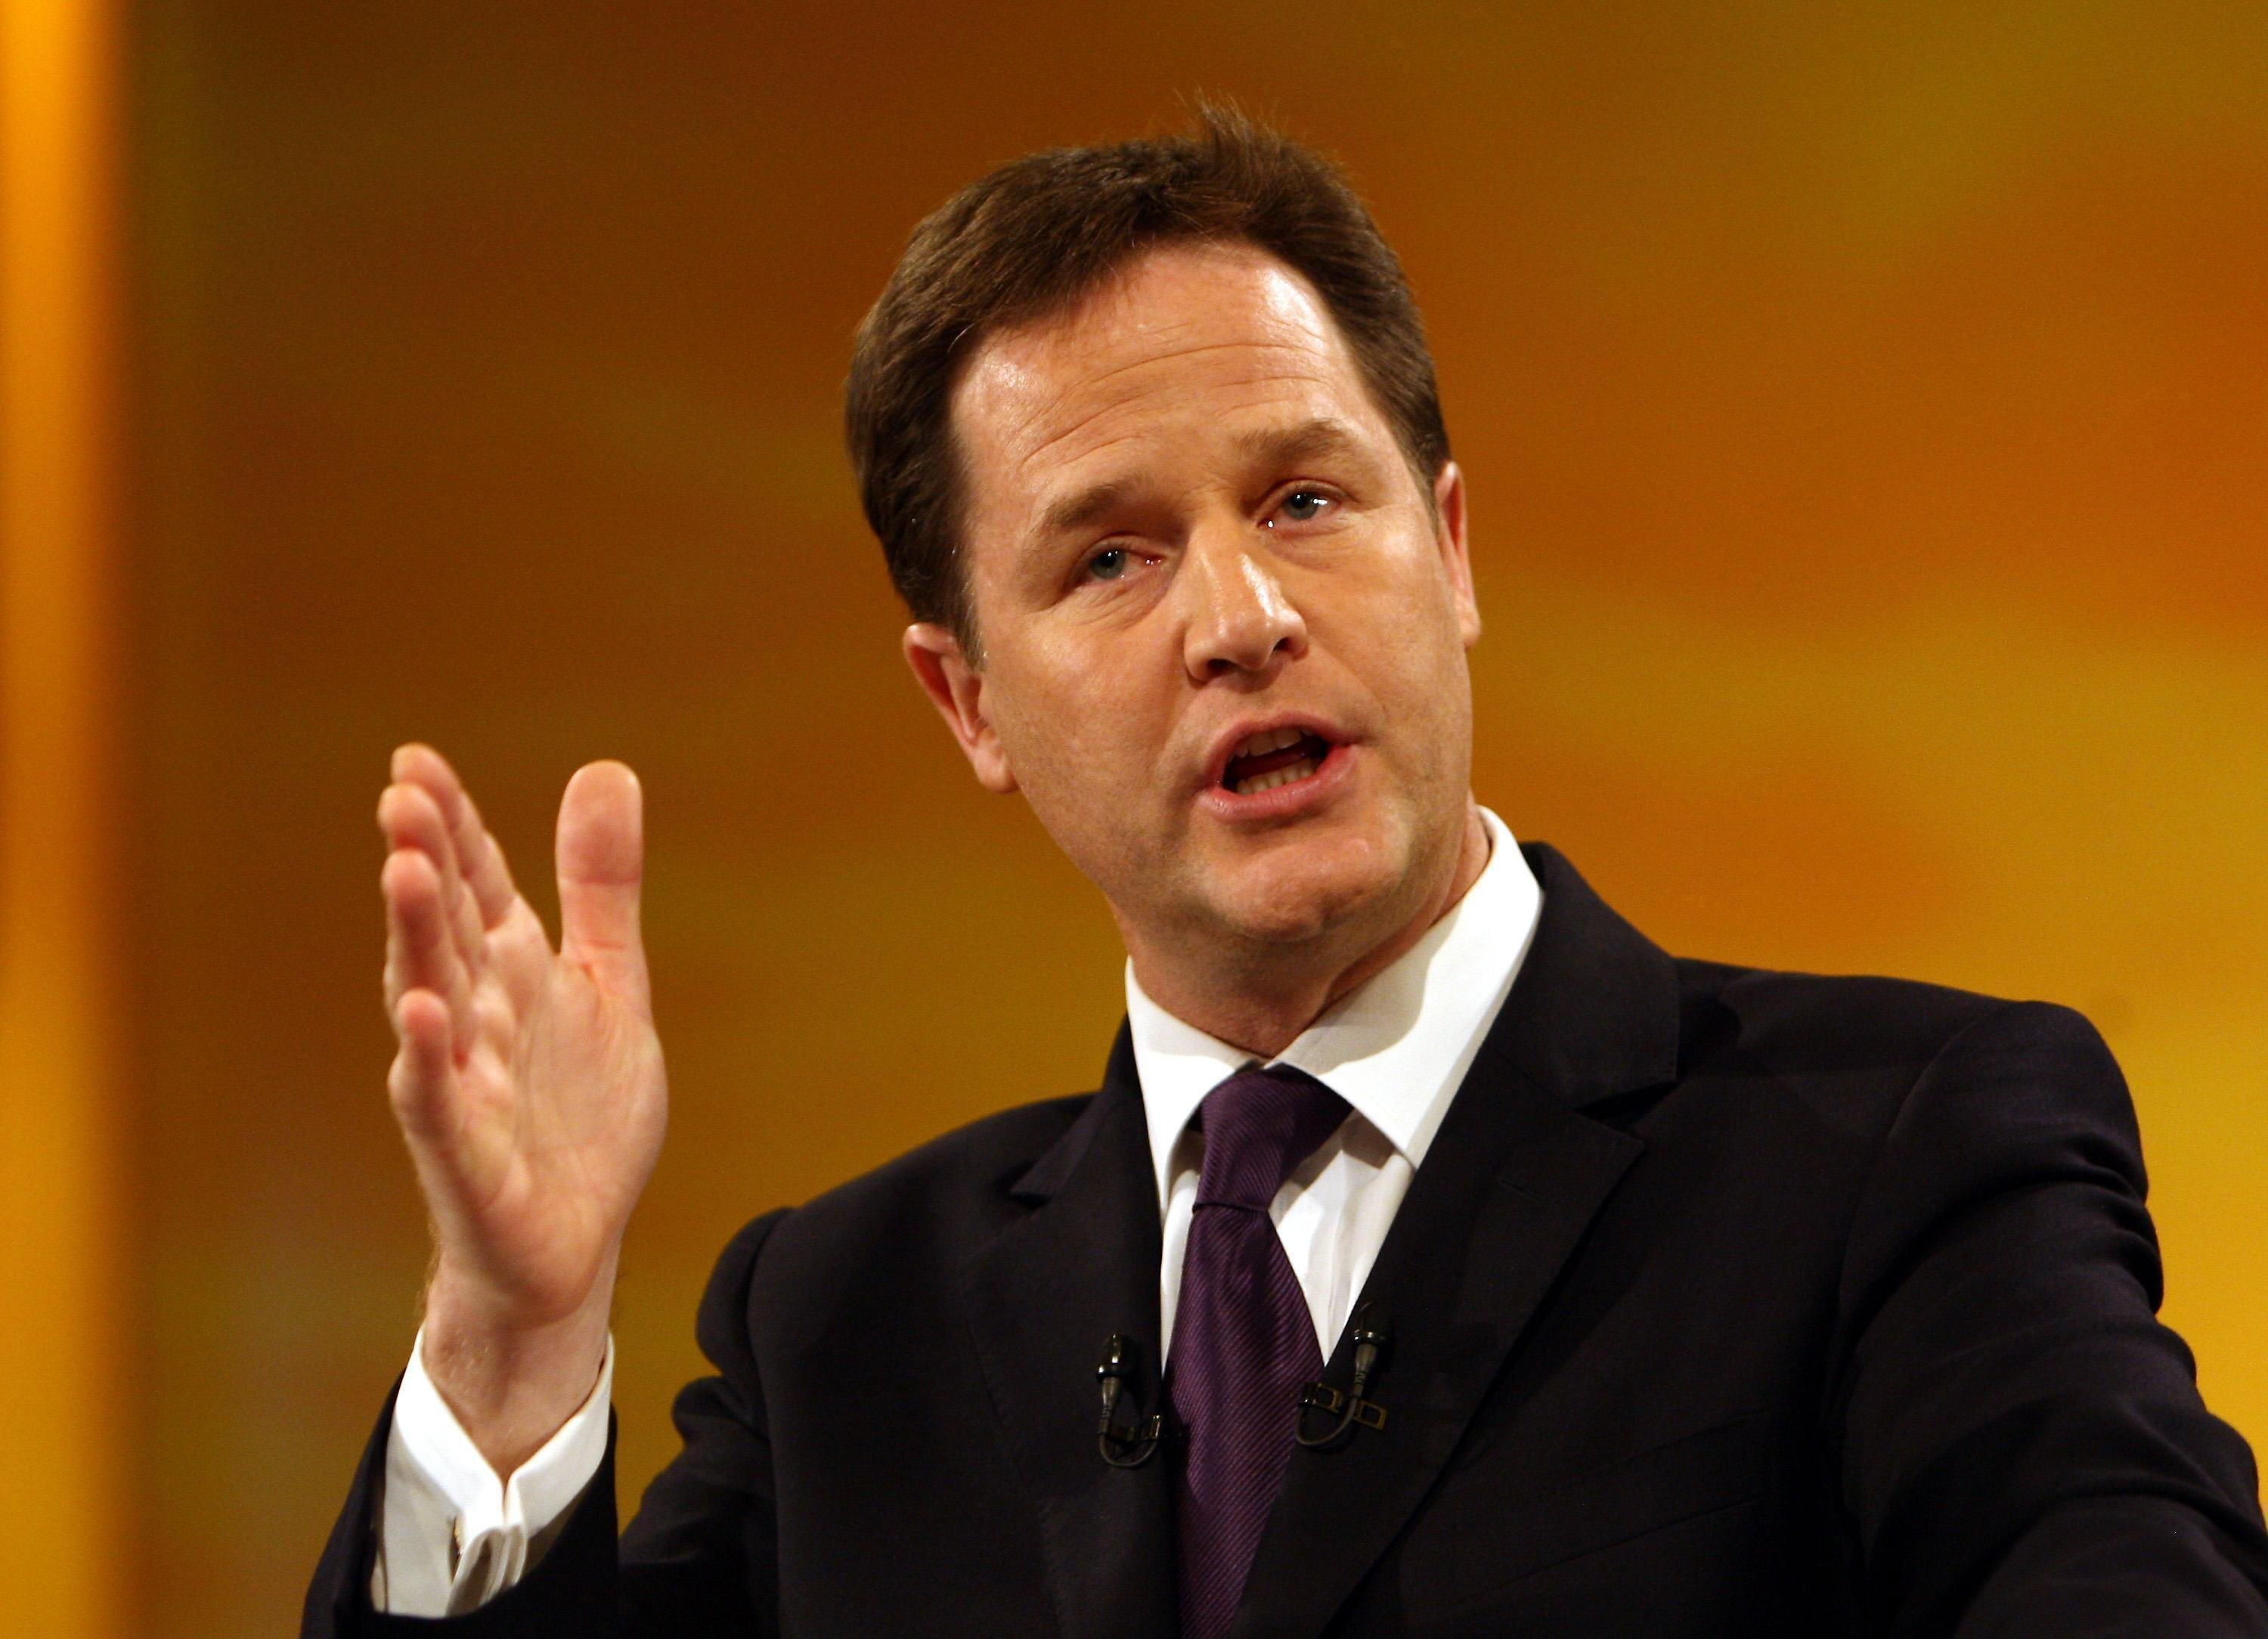 Nick Clegg warning on Europe